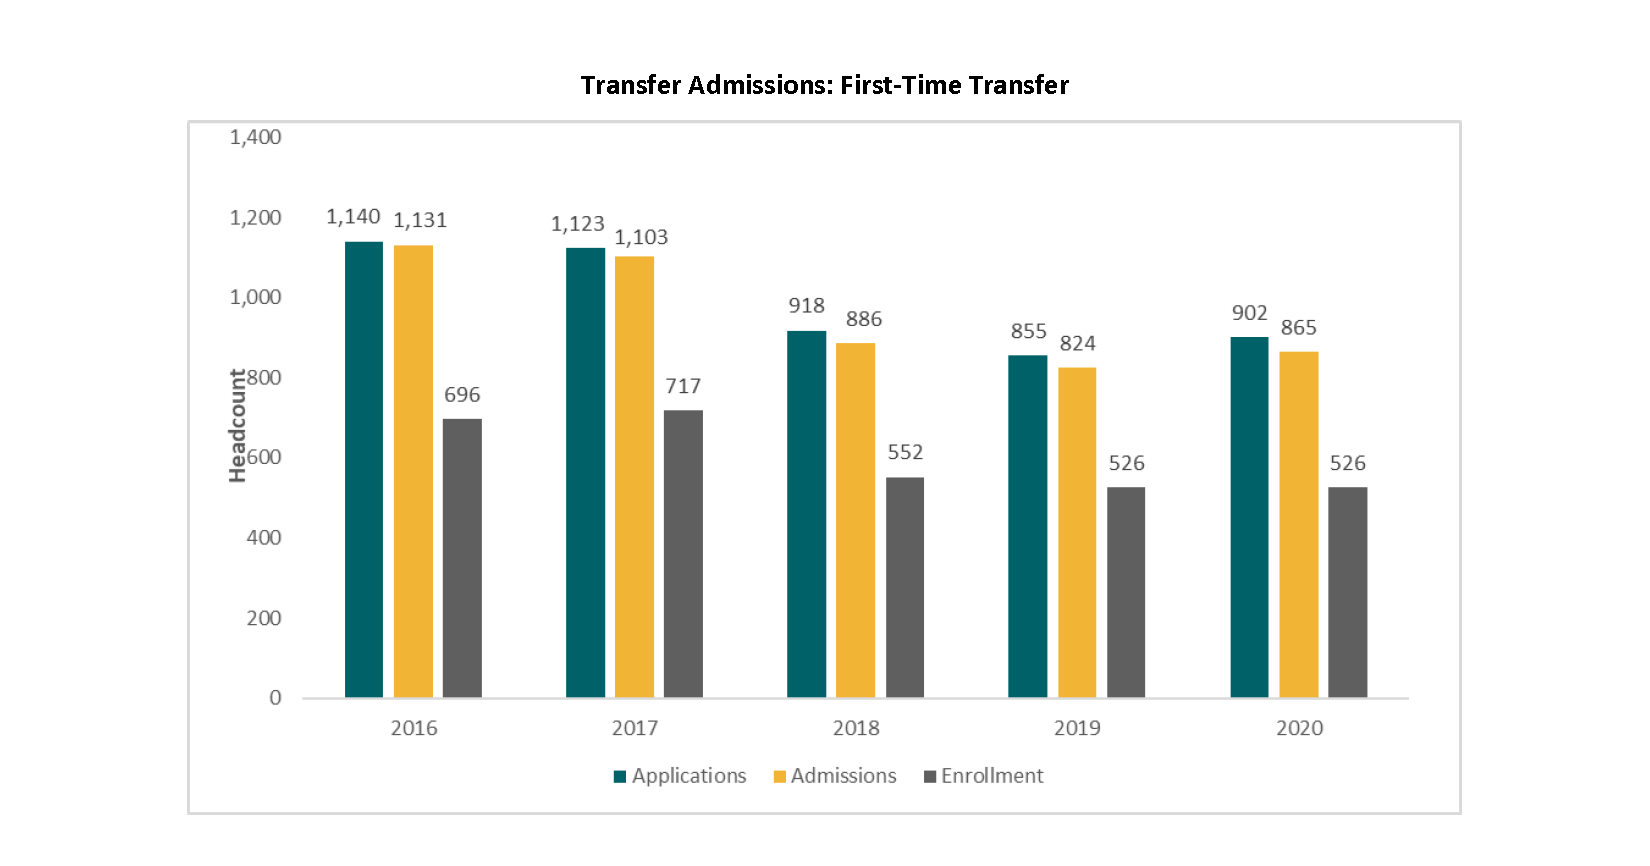 Transfer Admissions: First-Time Transfer